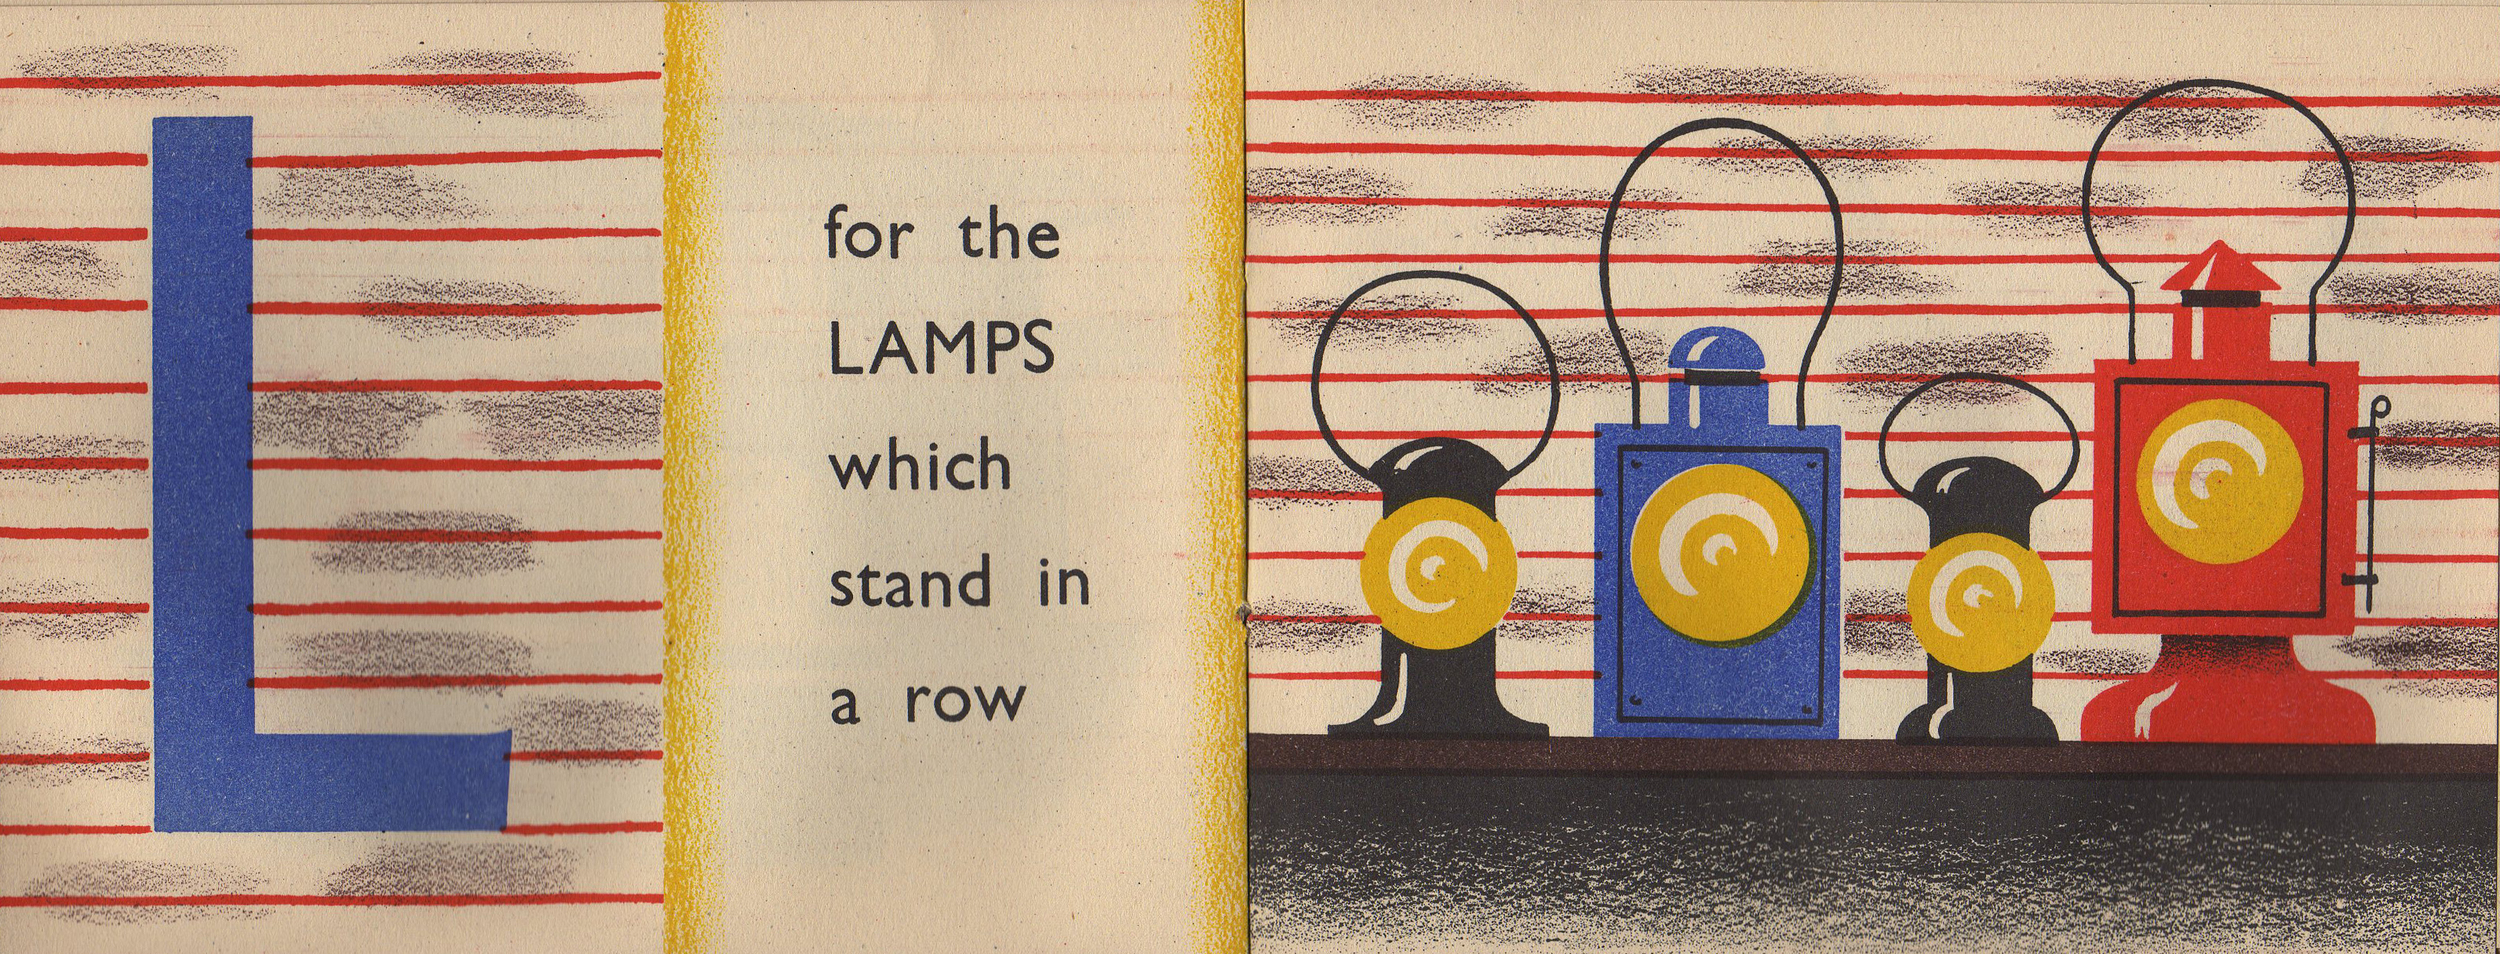 L for the LAMPS